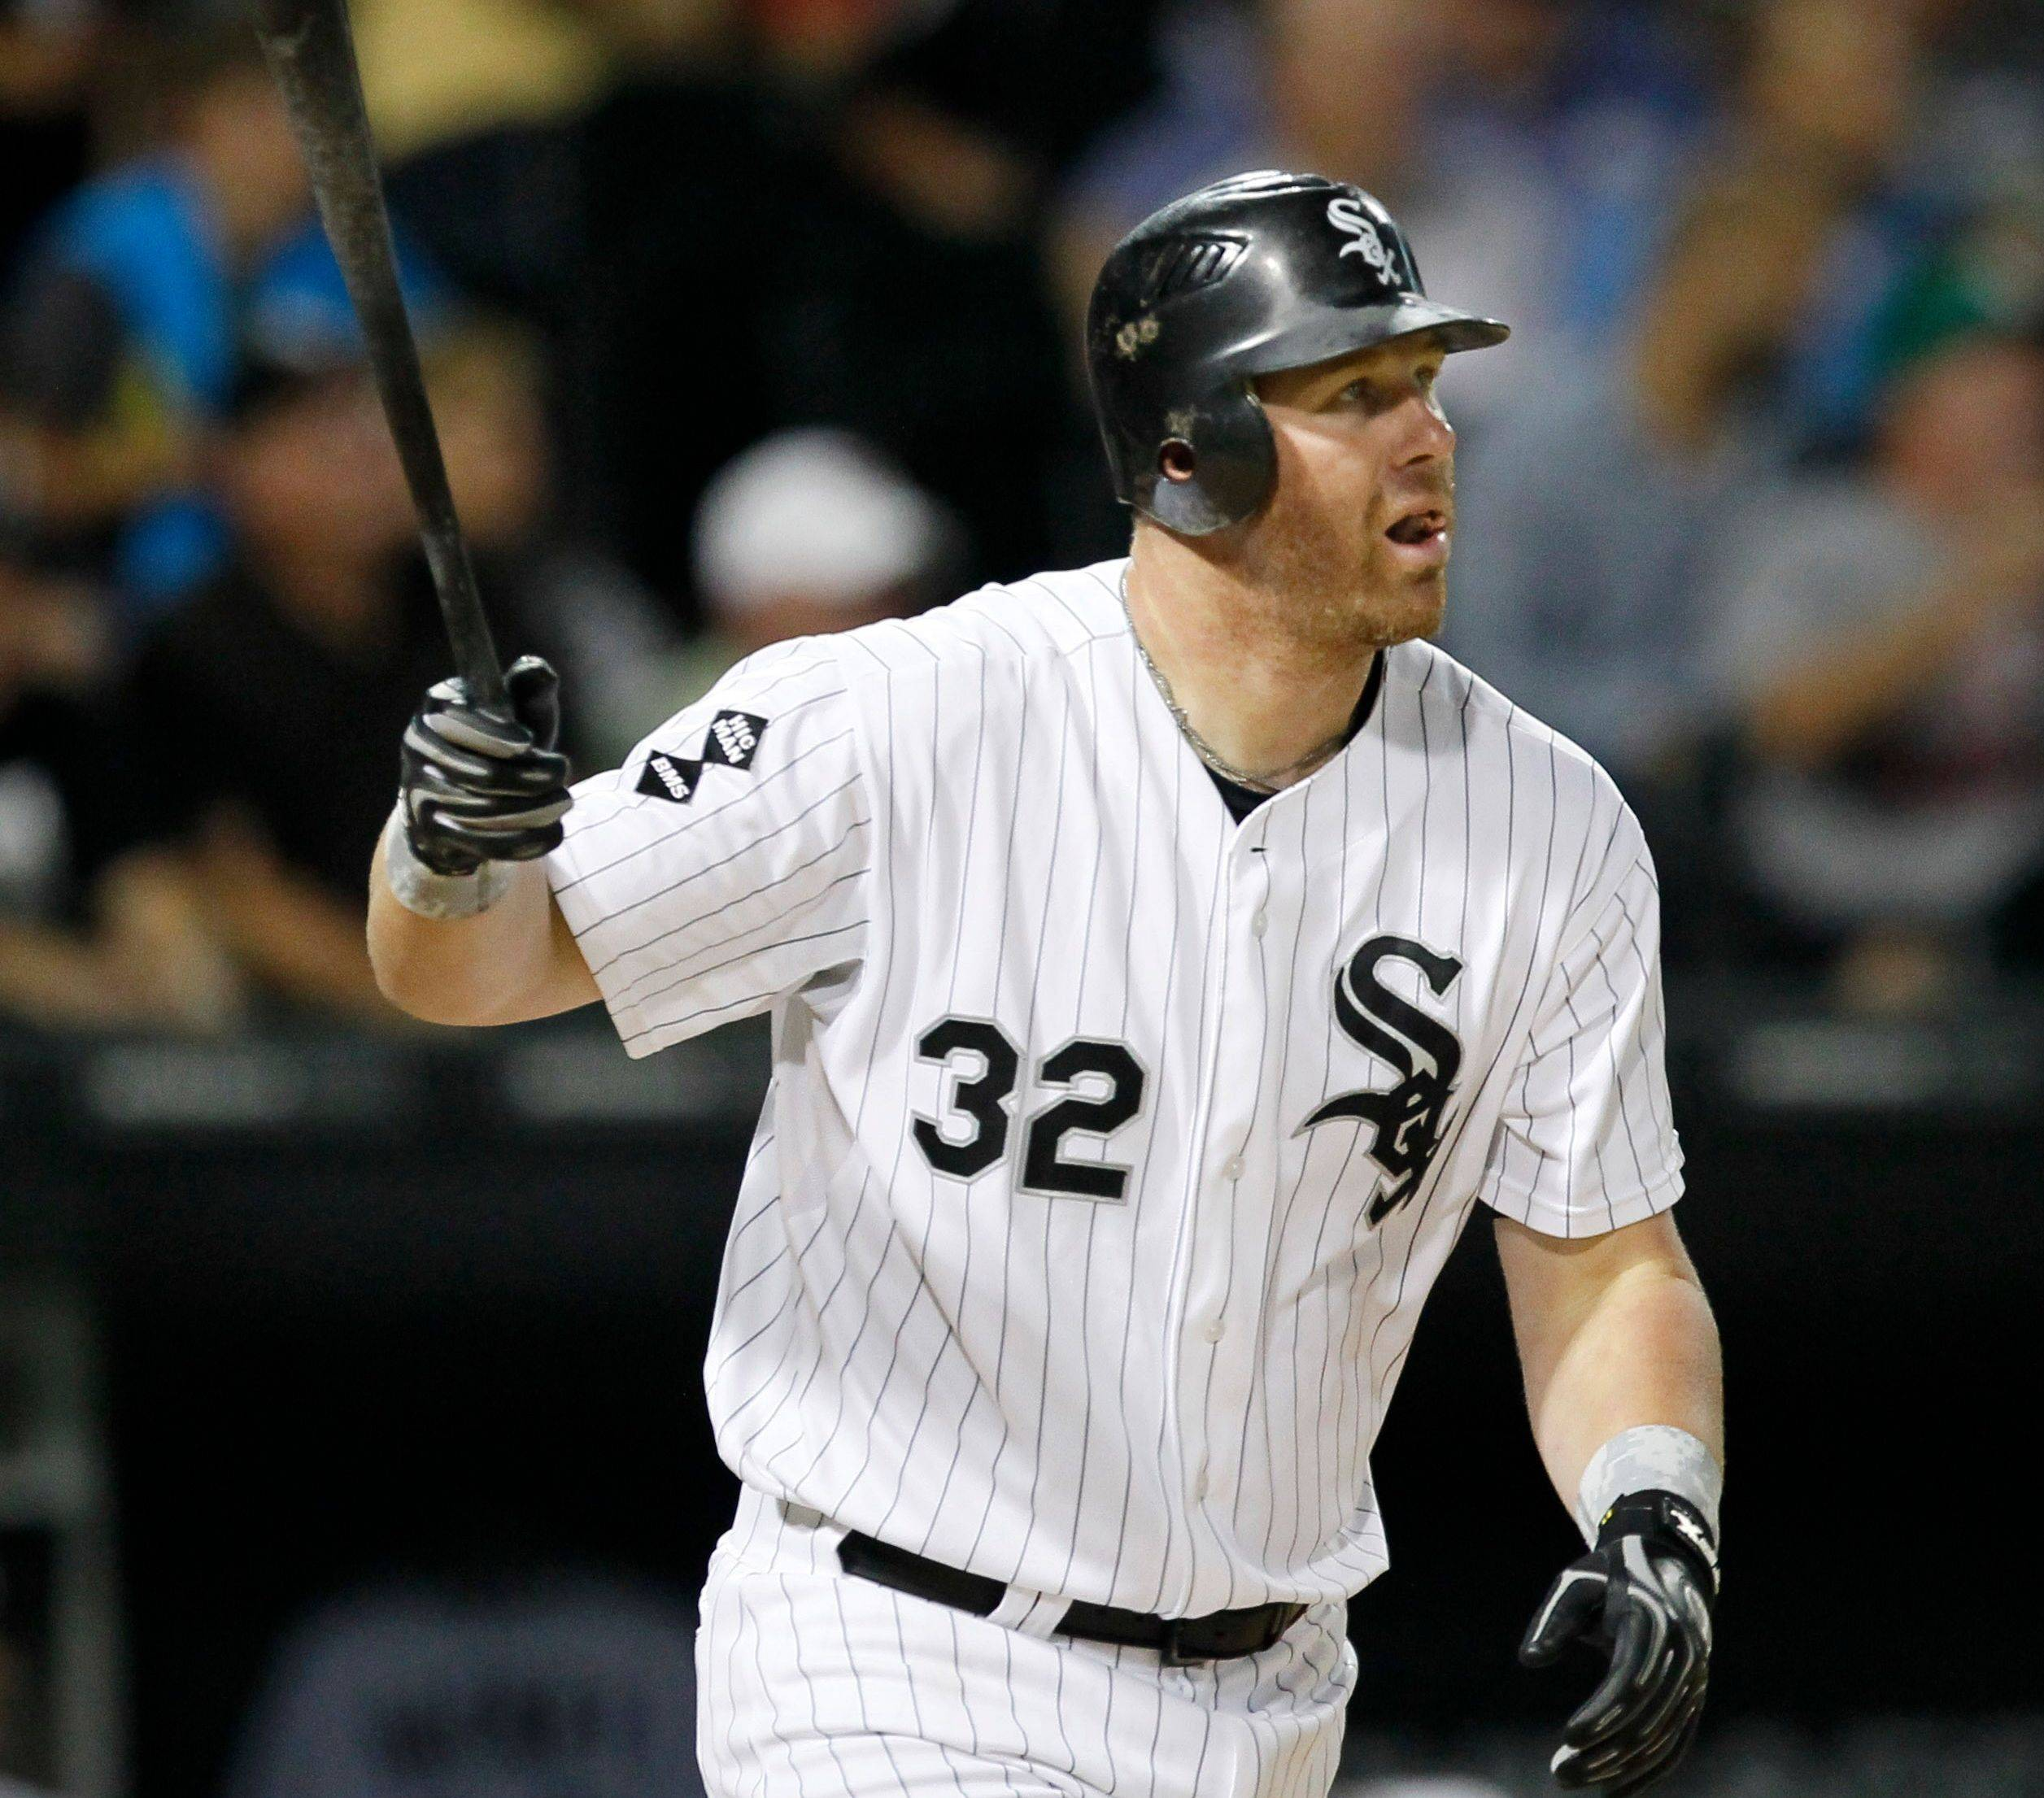 Adam Dunn had a nice bounceback season in 2012 with 41 home runs and 96 RBI. He still struck out at an alarming rate, though, finishing with a major-league-high 222.